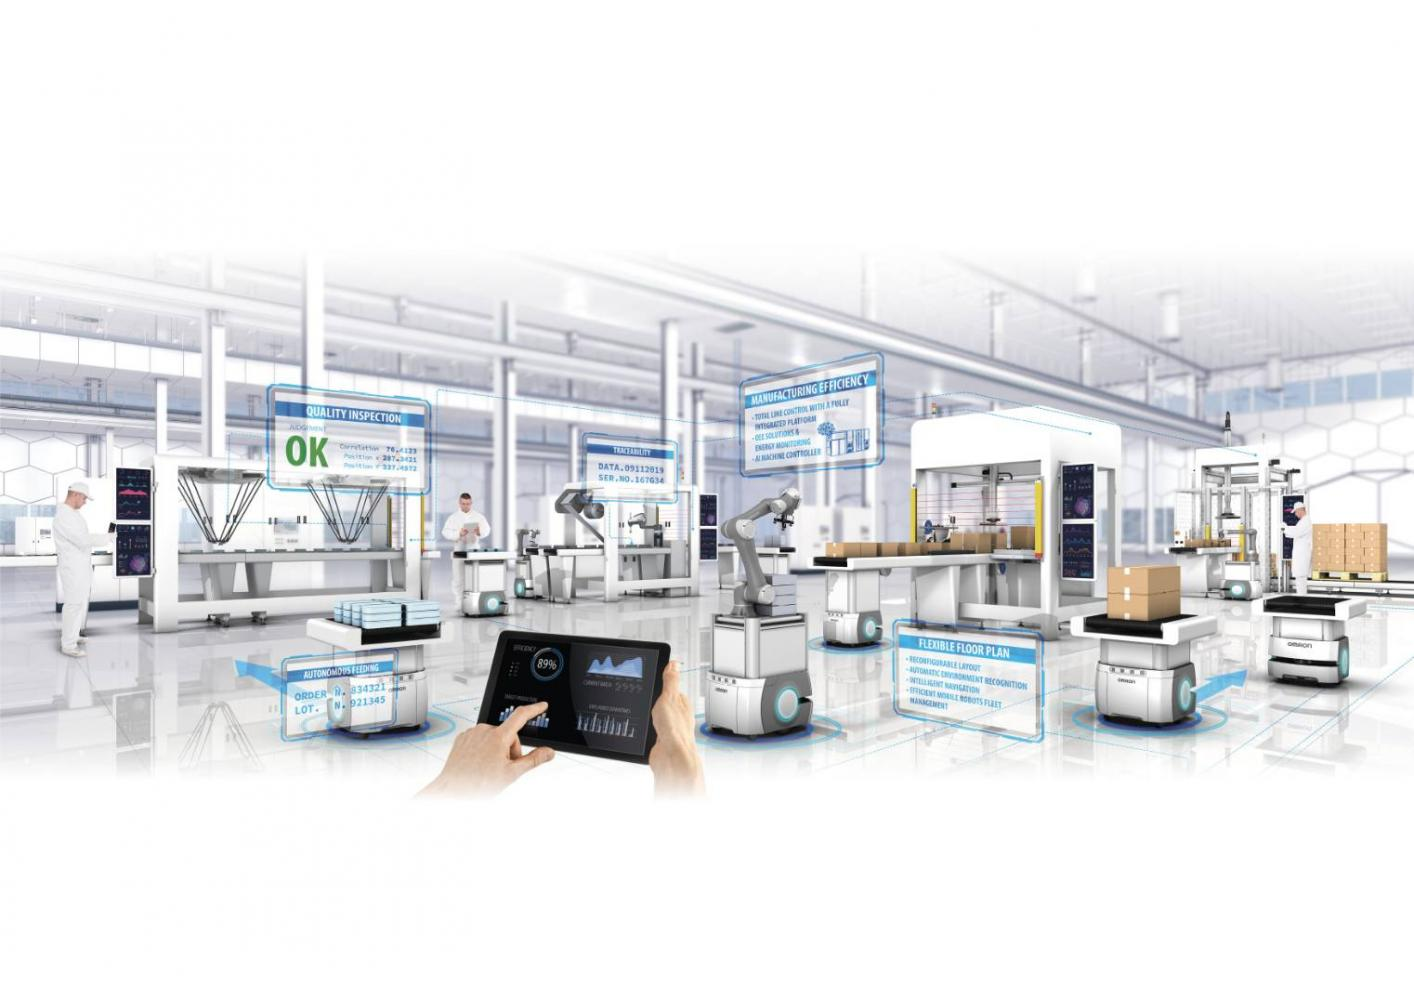 An artist's rendition of a 5G-based smart manufacturing operation through cooperation between AIS and Omron.